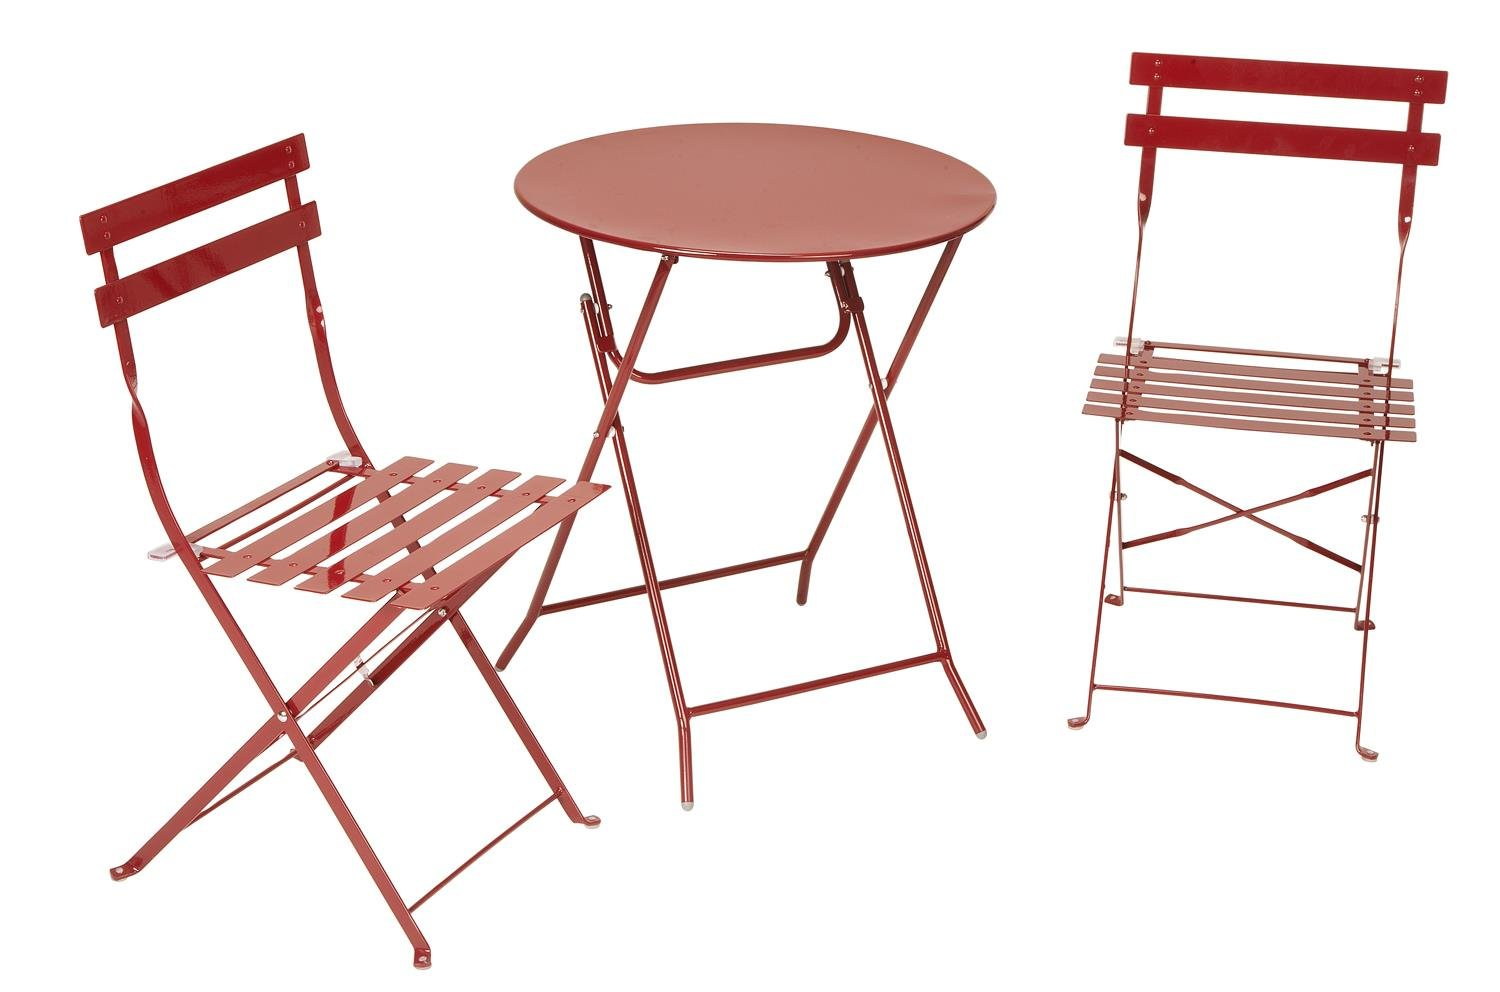 amazoncom cosco 3 piece folding bistro style patio table and chairs set red kitchen dining - Garden Furniture 3 Piece